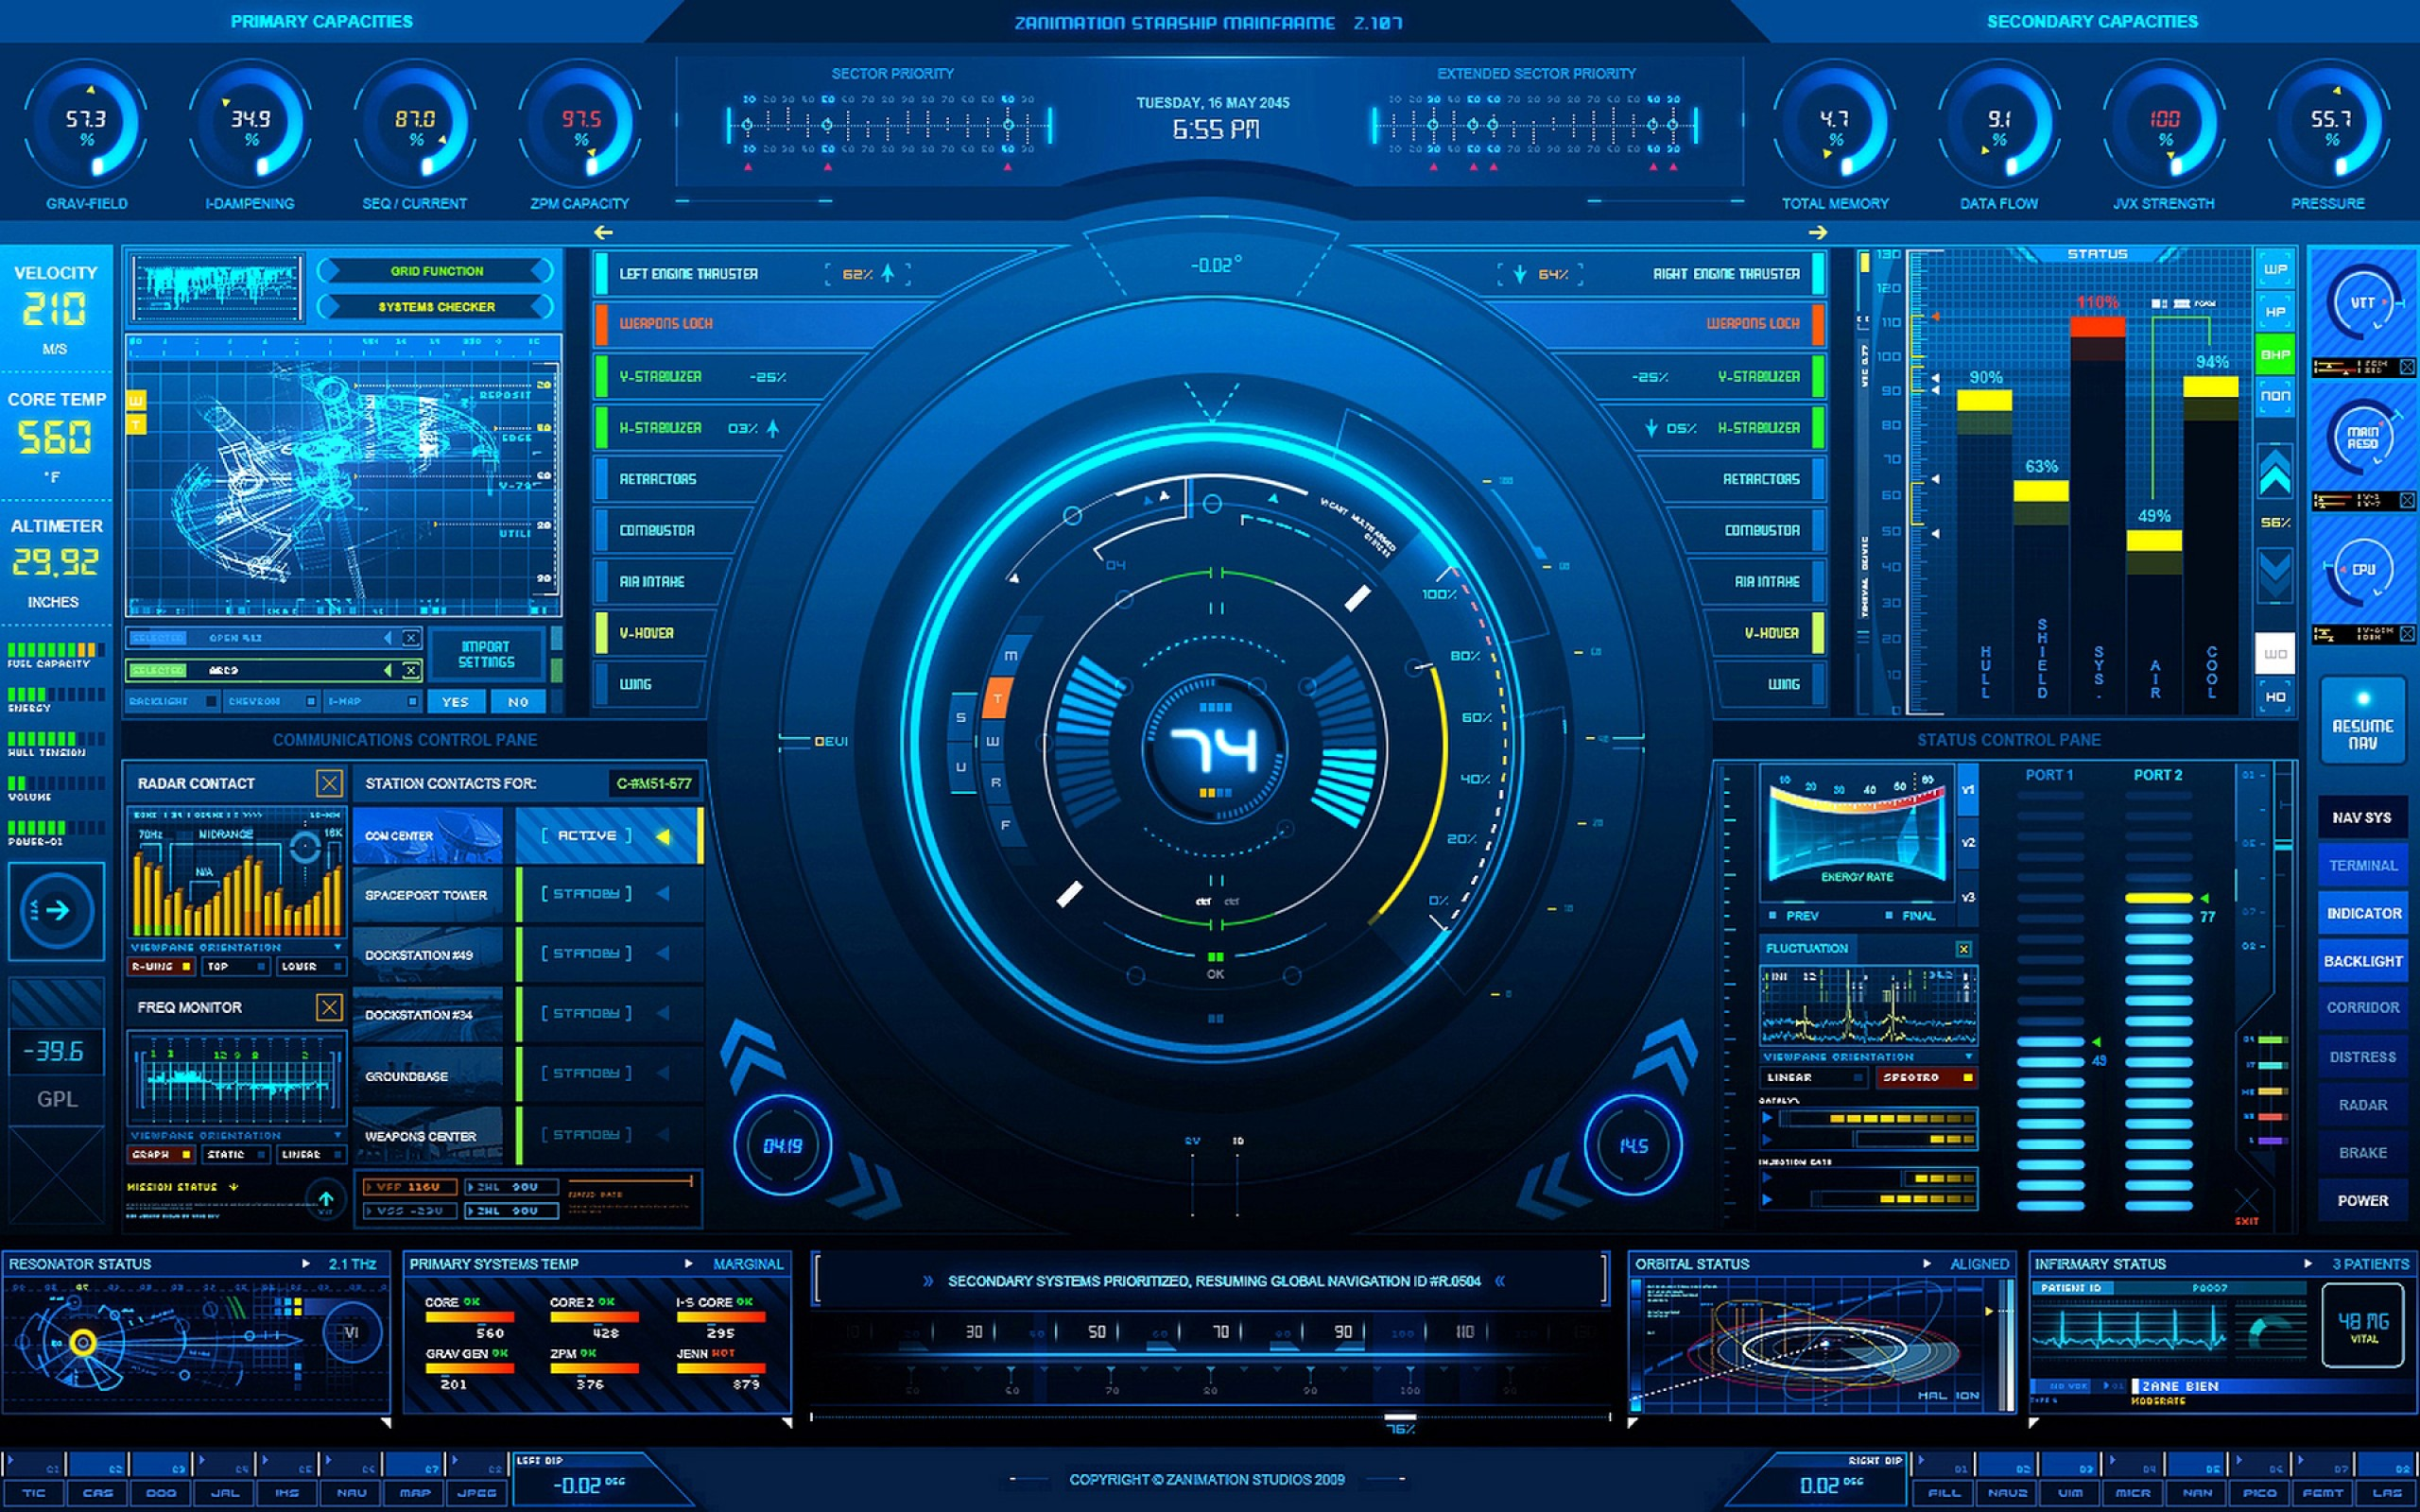 Cool High Tech Wallpaper 30878 1440x900 px